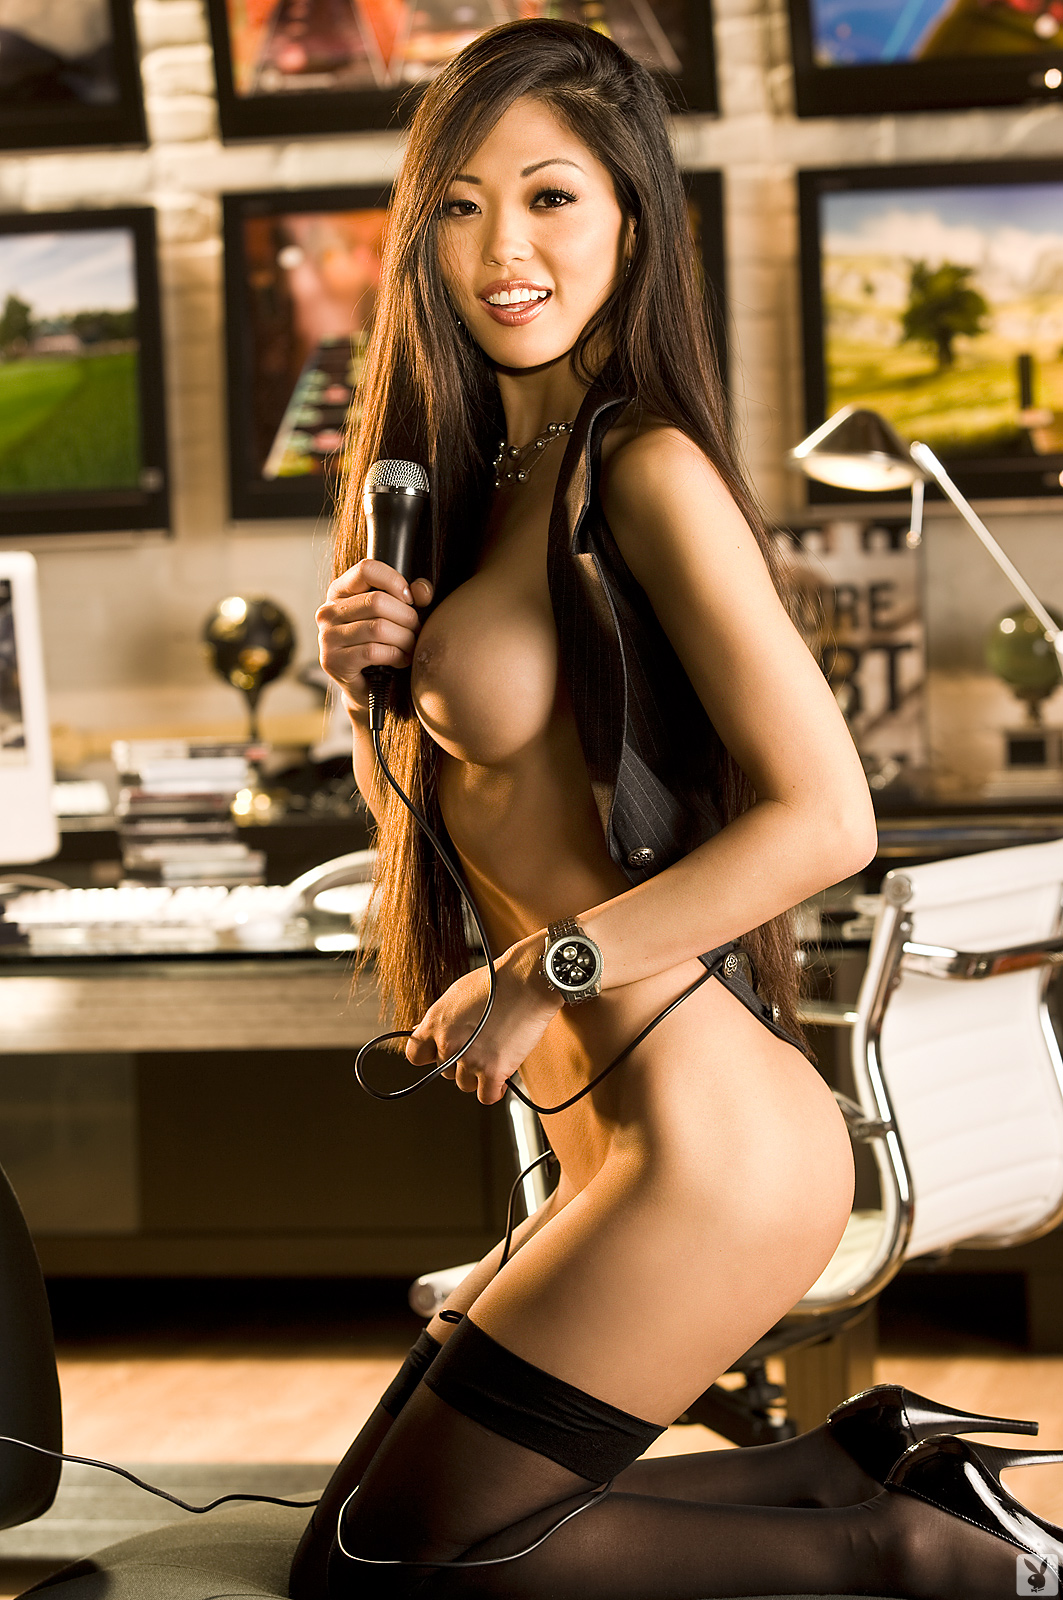 grace-kim-guitar-stockings-naked-asian-playboy-15